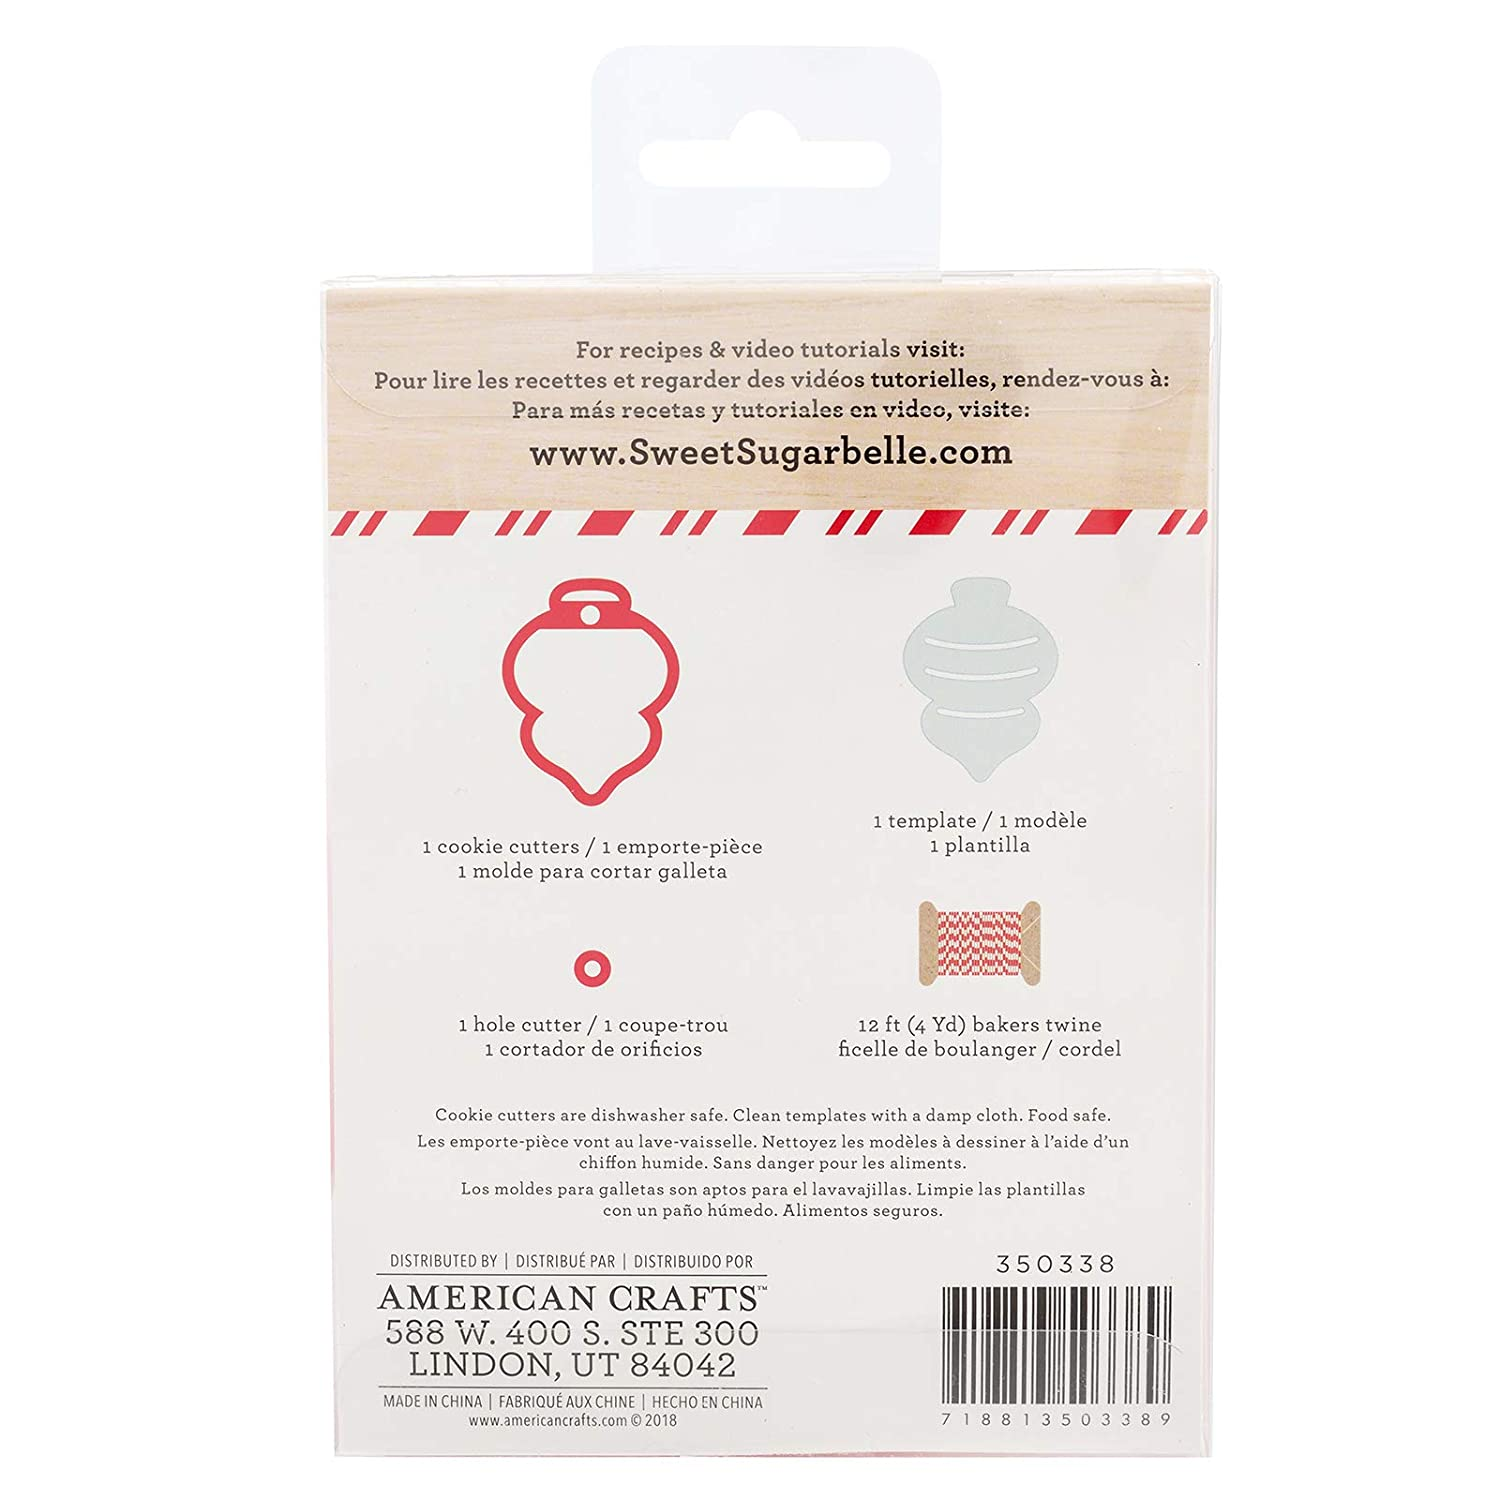 Amazon.com: Sweet Sugarbelle - Holiday 2018 Ornament Kits - Christmas, Snowflake and Candy Cane - Cookie Cutters, Templates and Twine: Home & Kitchen